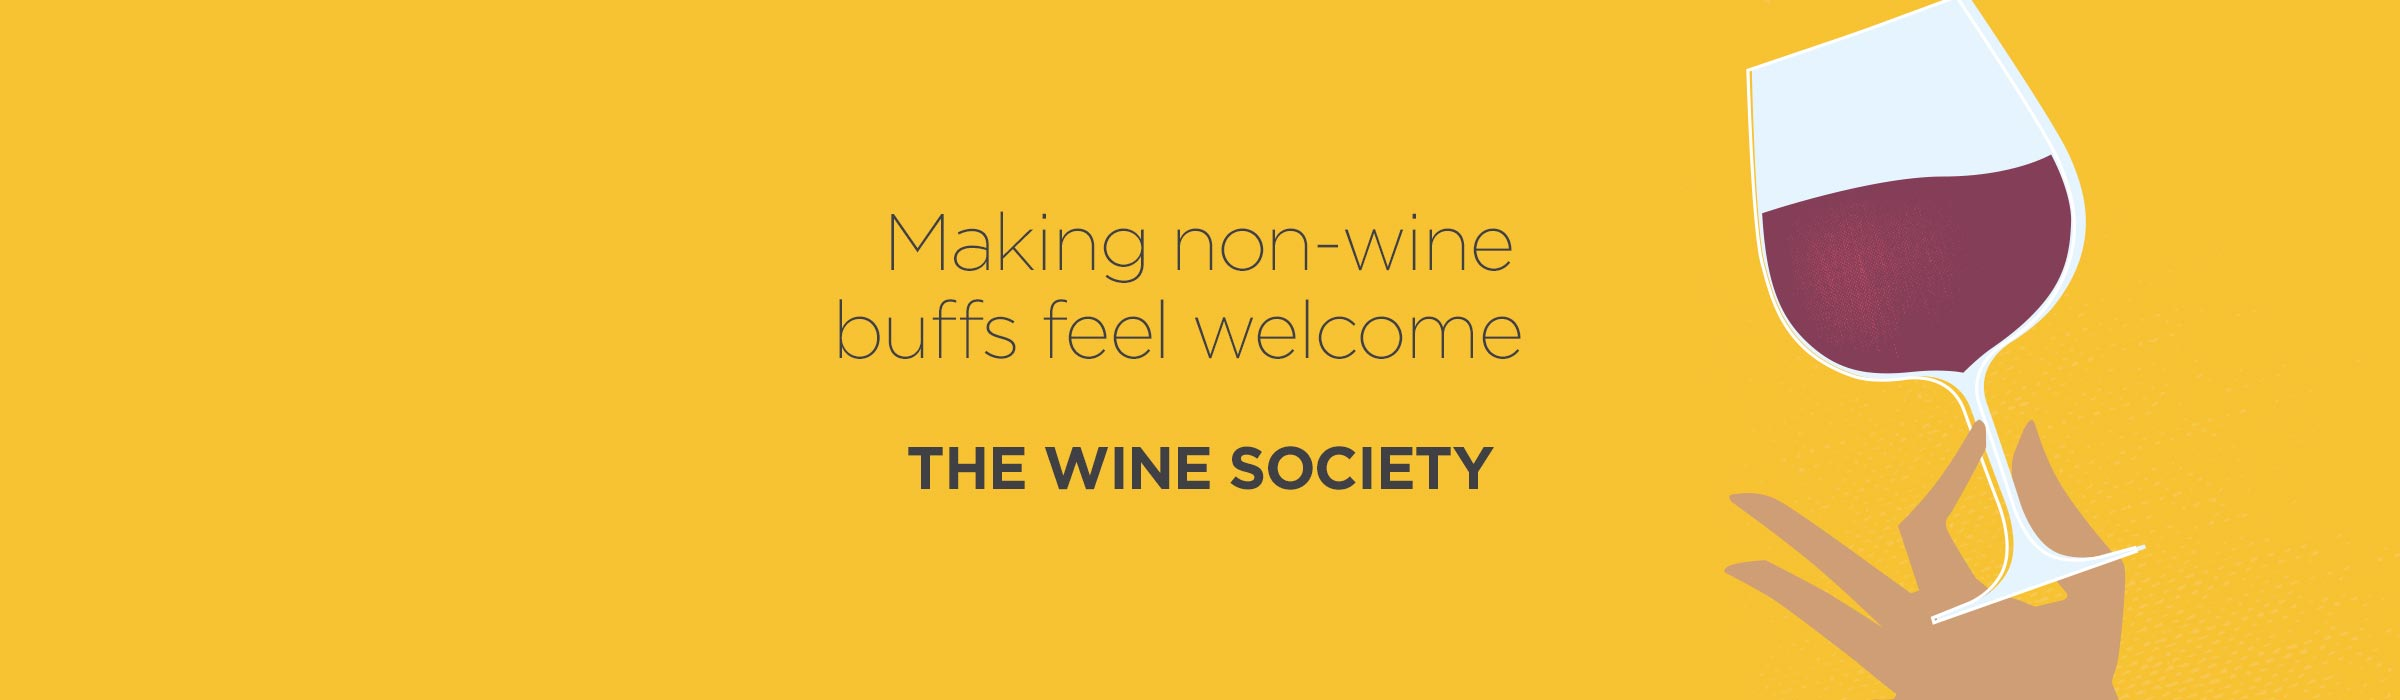 The Wine Society – Making non-wine buffs feel welcome